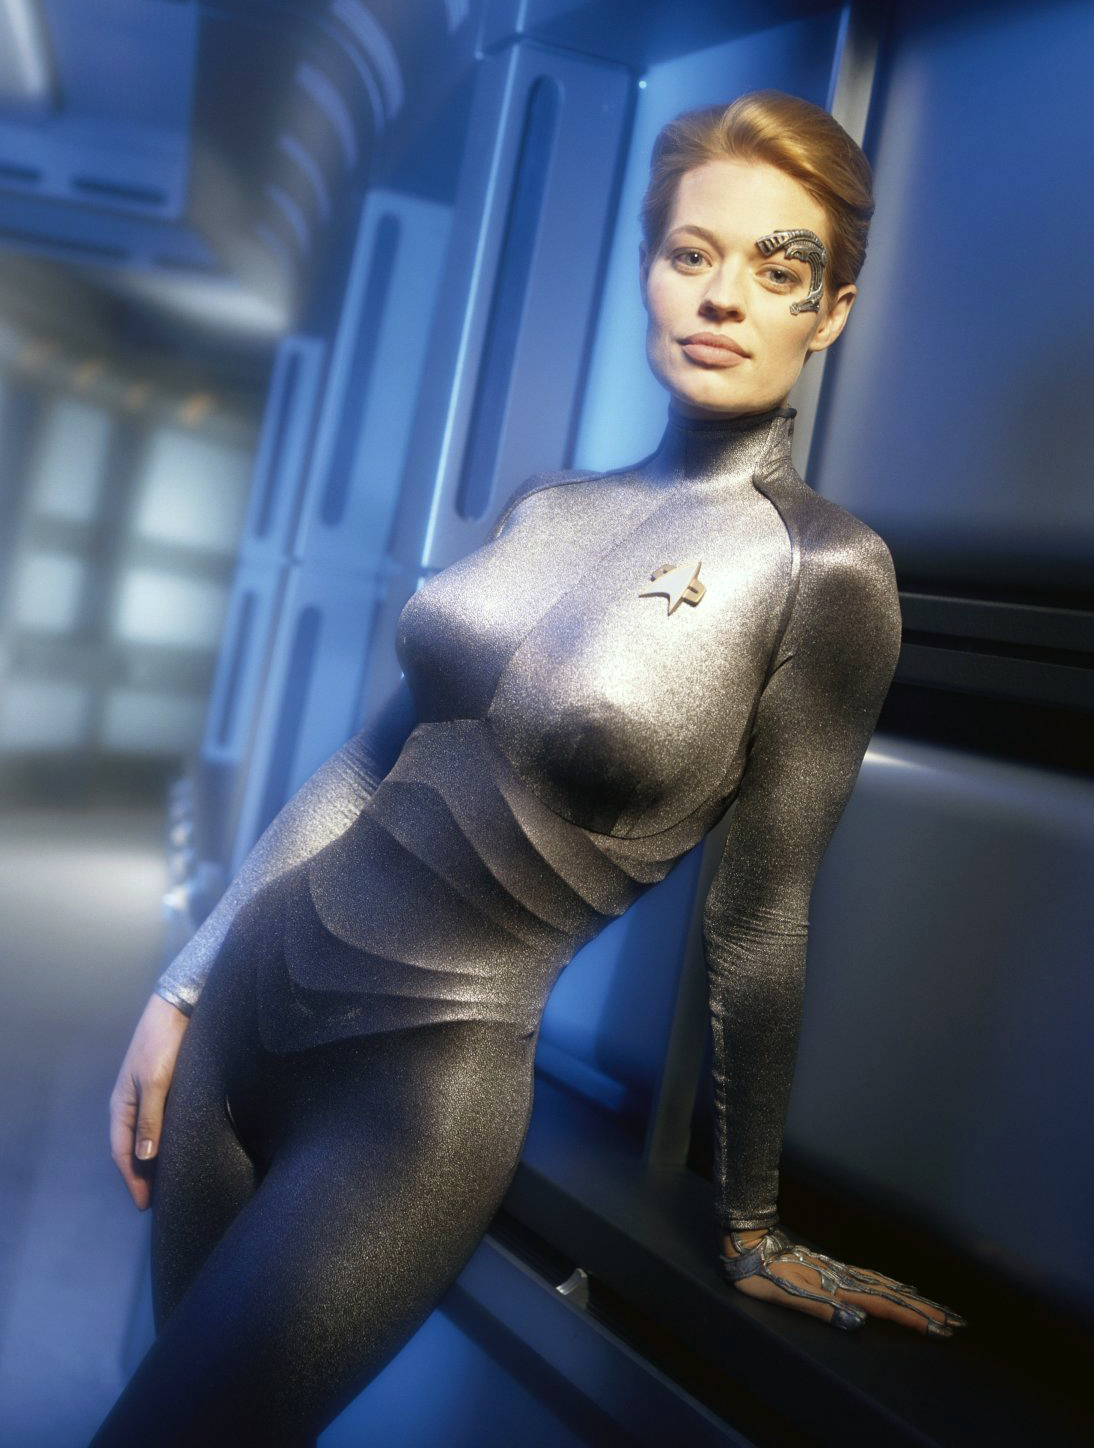 image Jeri ryan star trek booty compilation mq